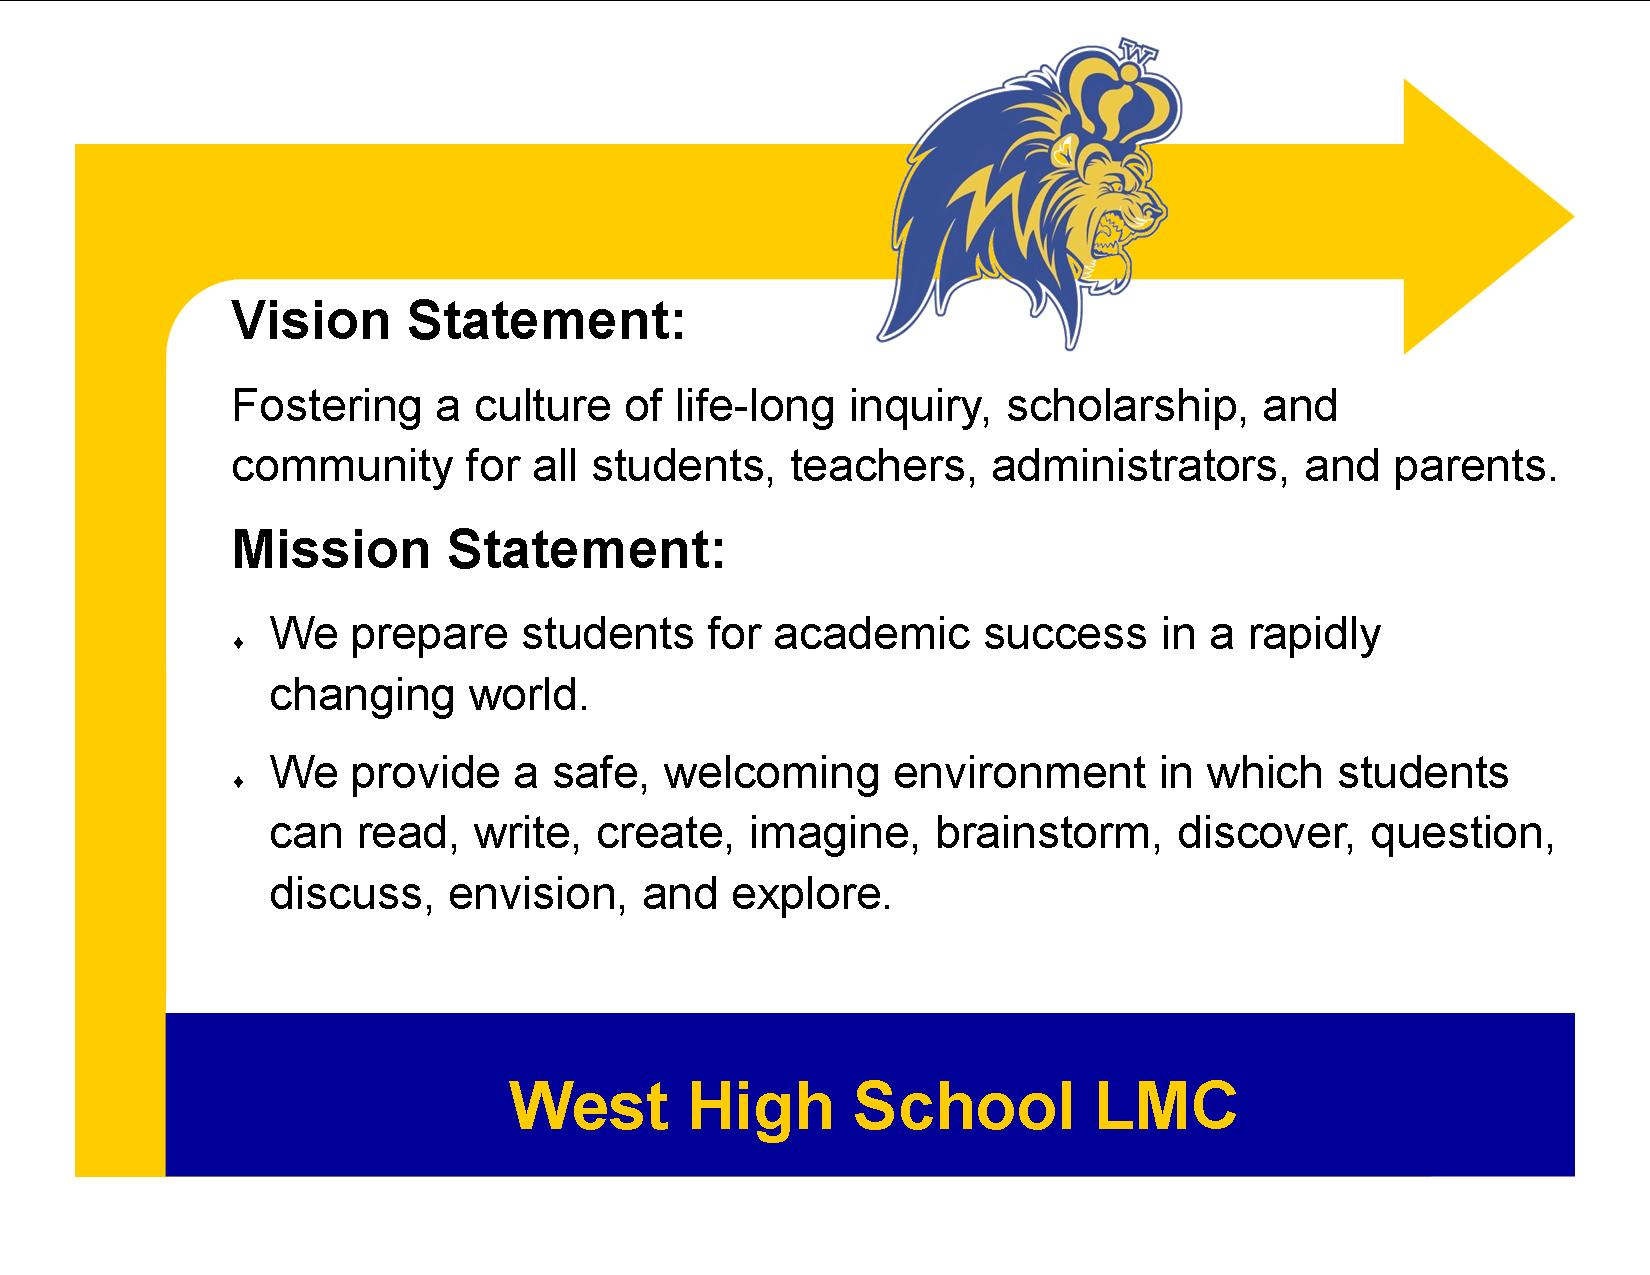 West High School LMC Vision and Mission Statement graphic